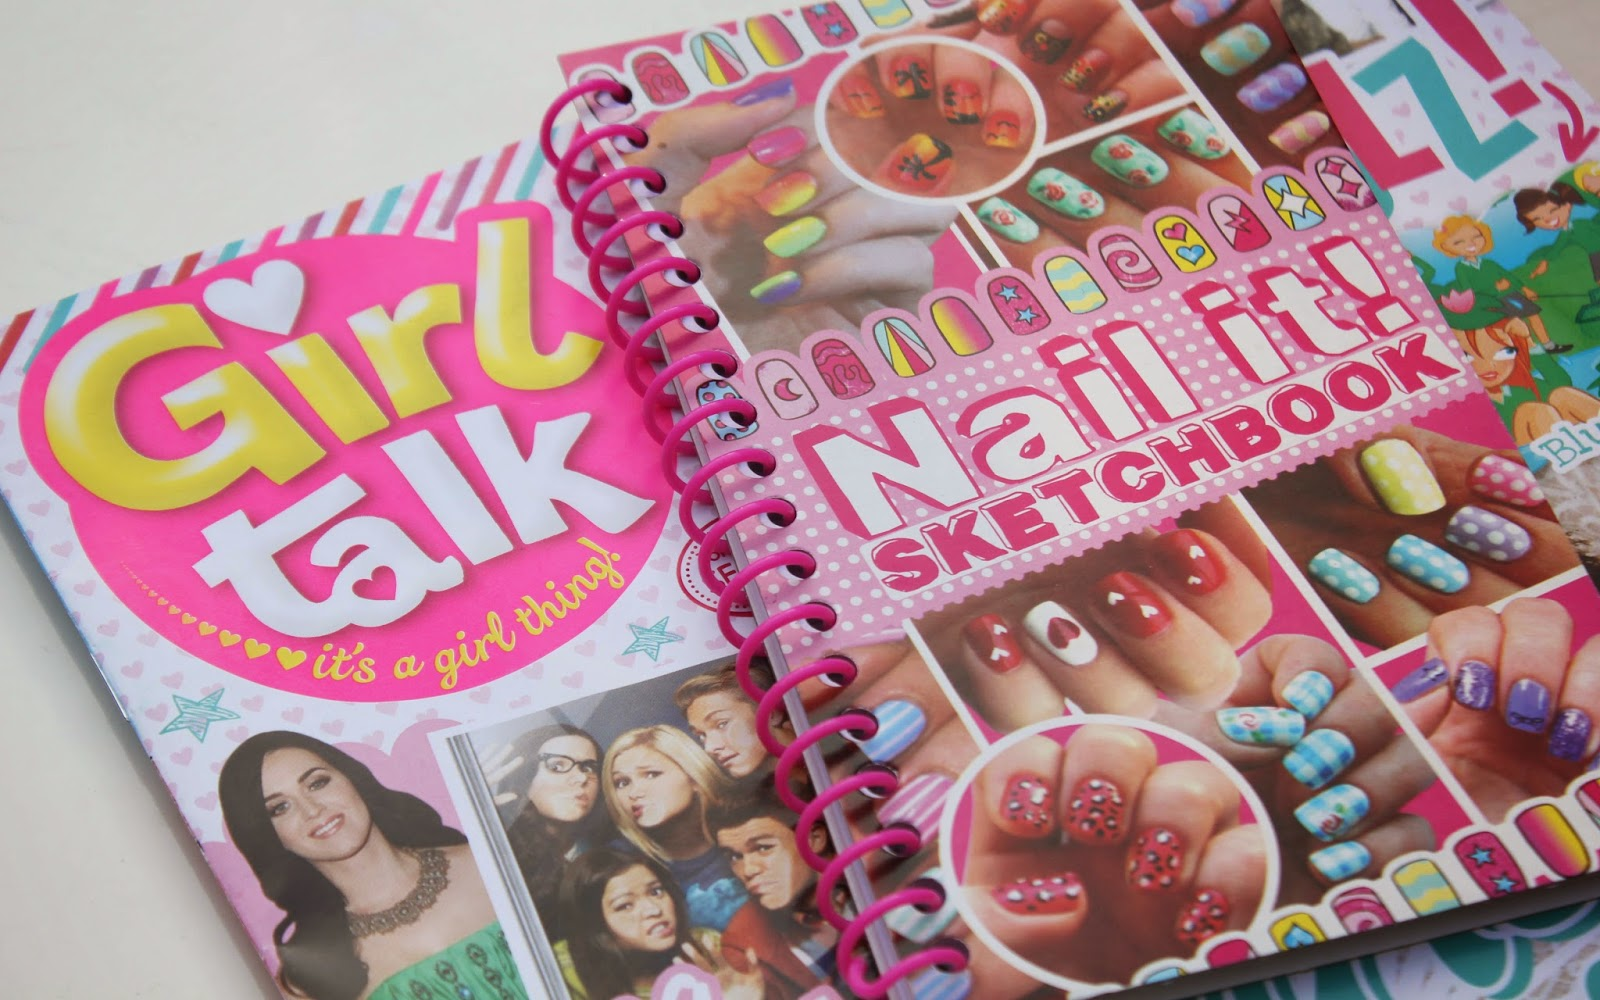 Girl Talk Magazine with Nail Art Kit